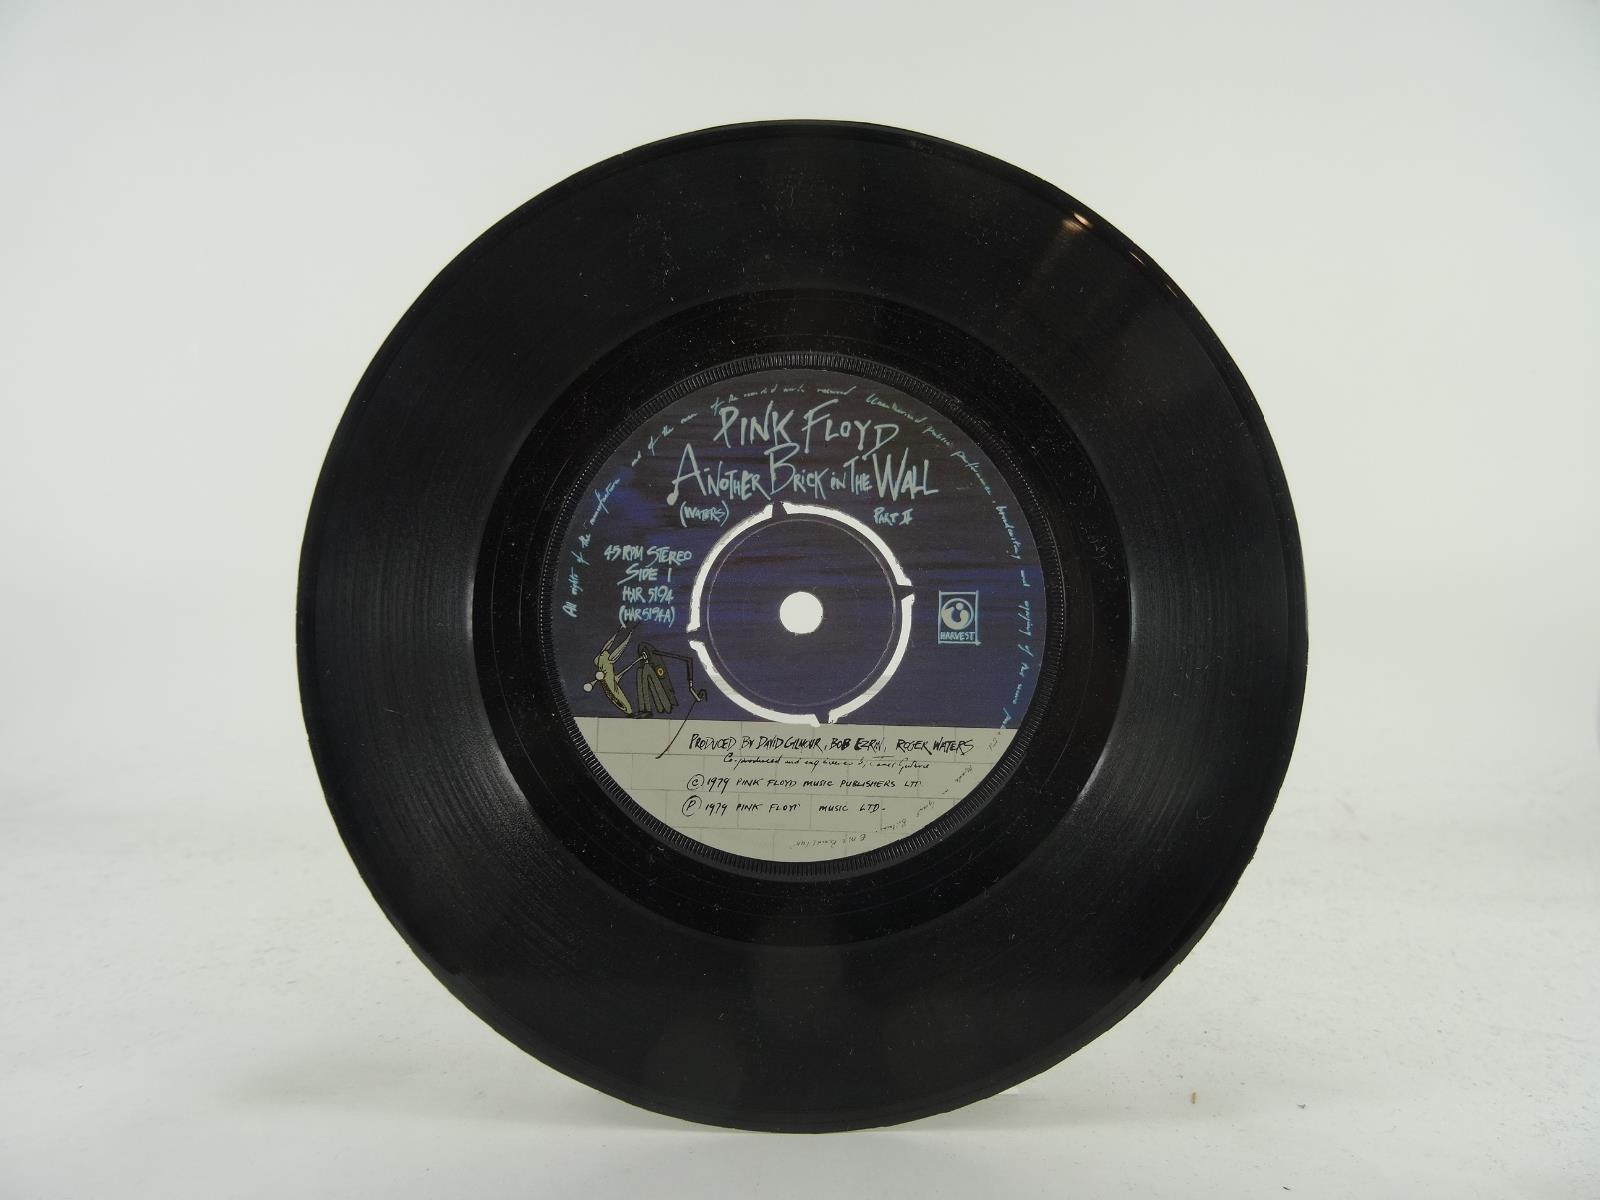 Image Is Loading PINK FLOYD ANOTHER BRICK IN THE WALL 99